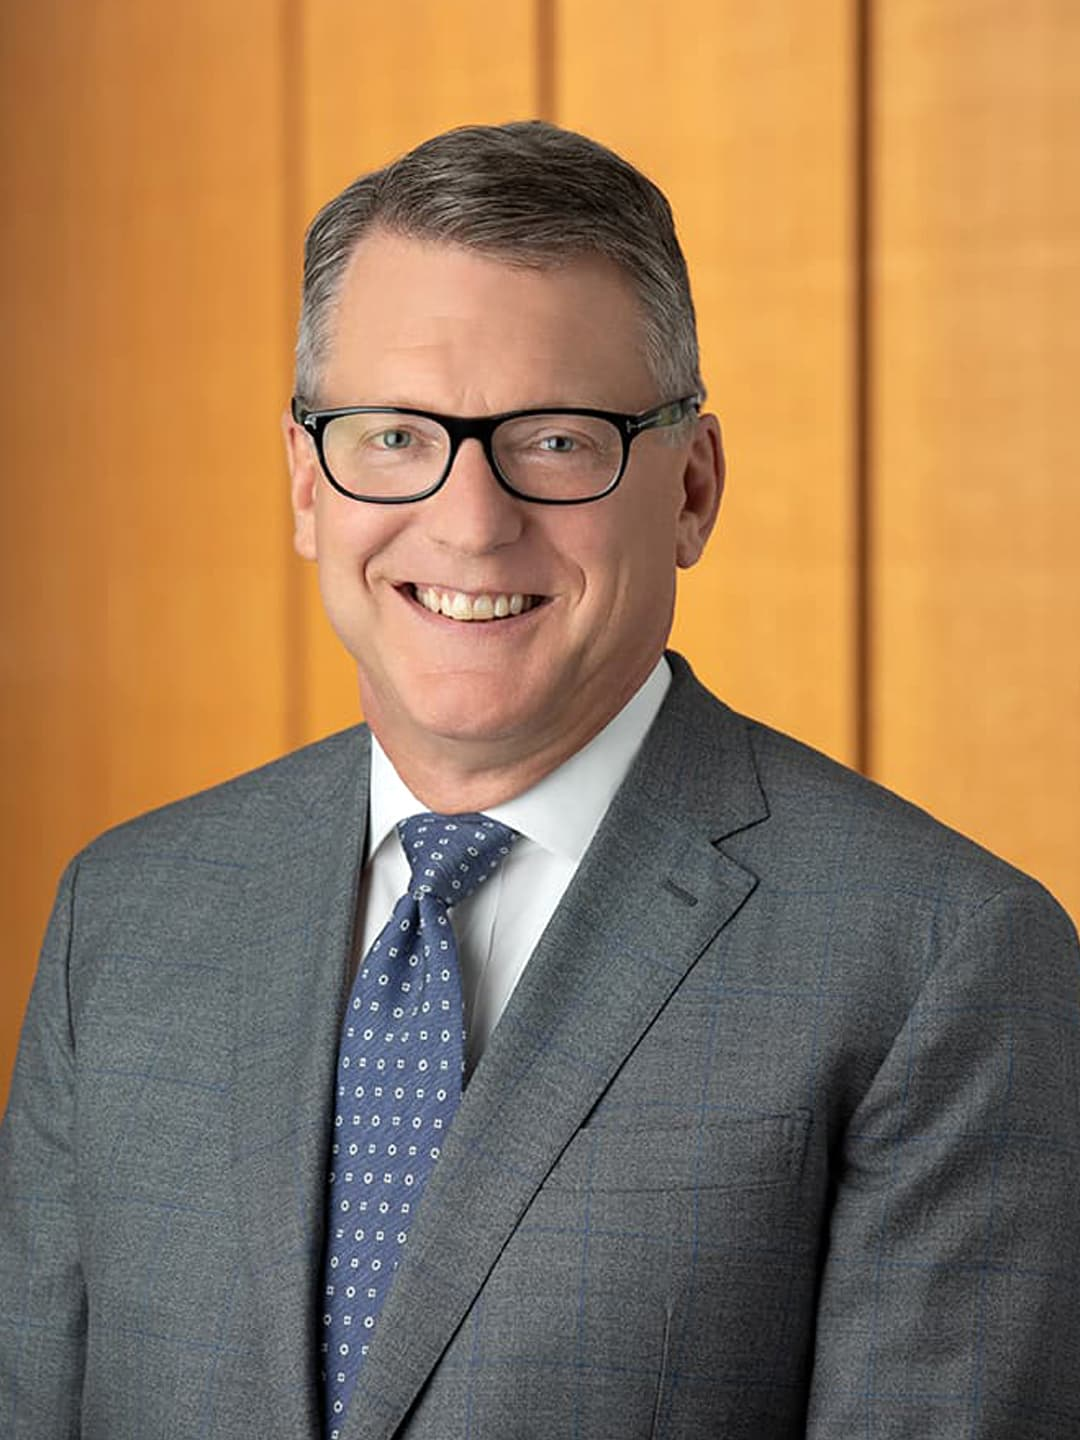 Mark Lashier, President and Chief Executive Officer